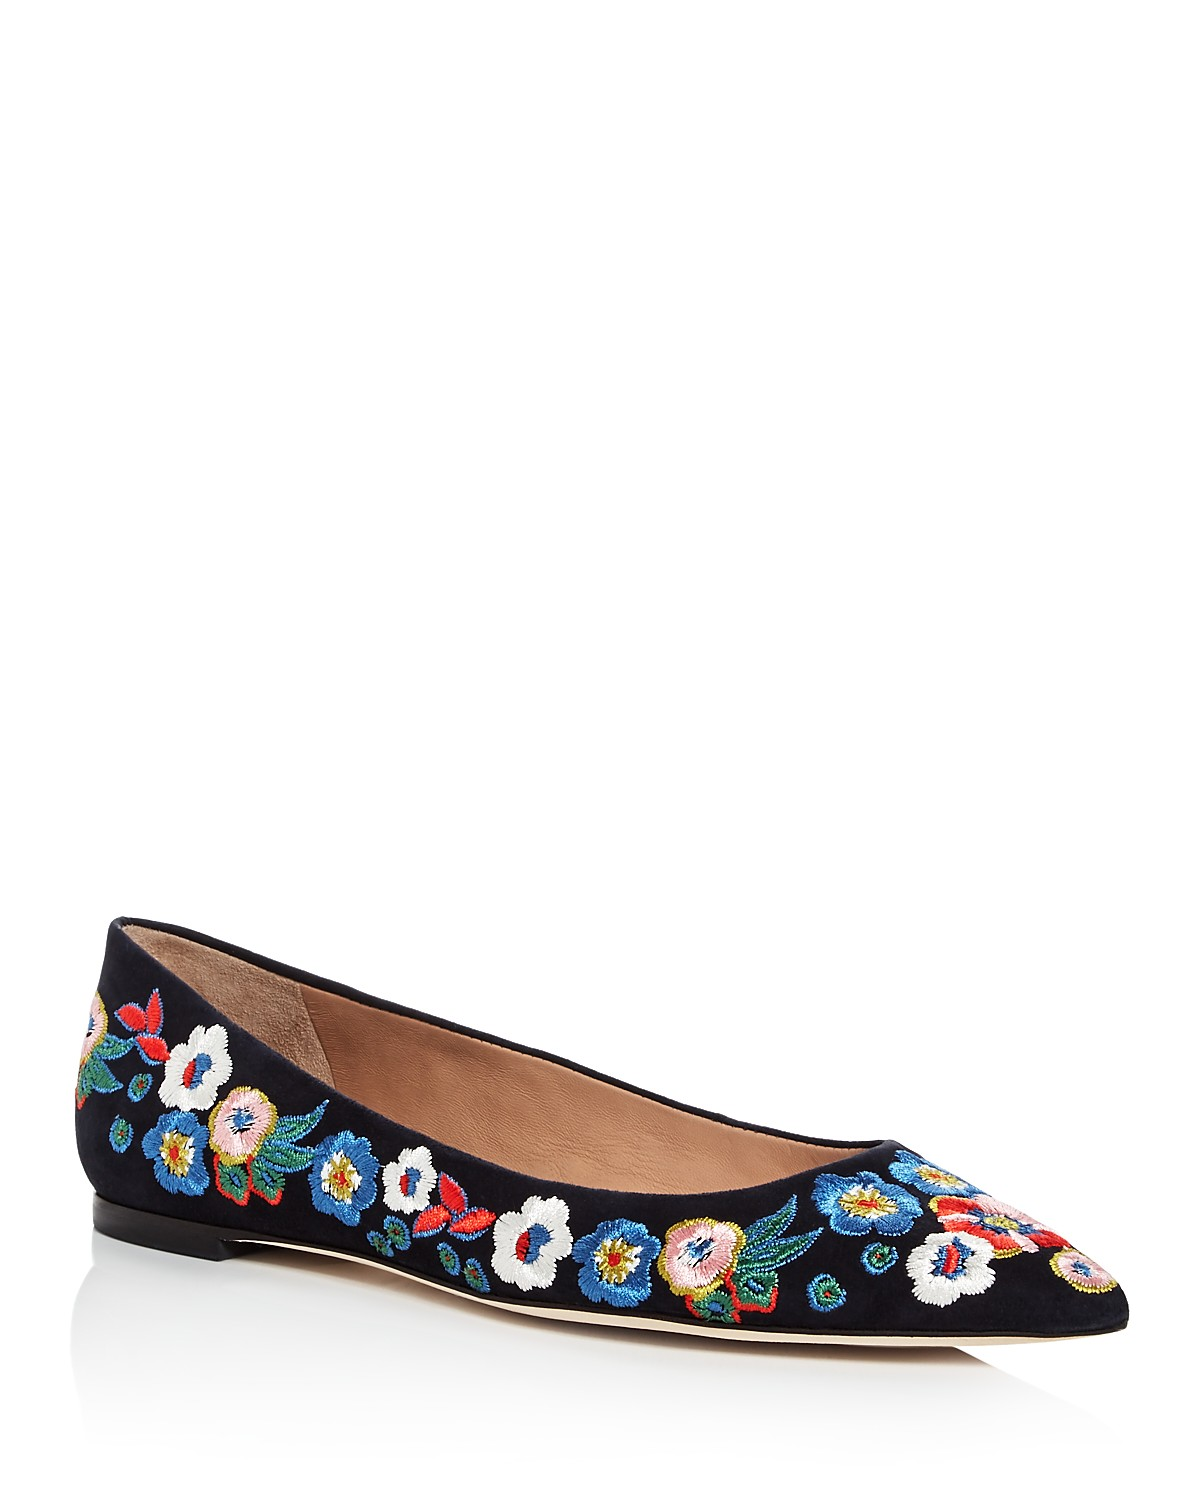 Tory Burch Women's Rosemont Embroidered Suede Pointed Toe Flats Yq1Os